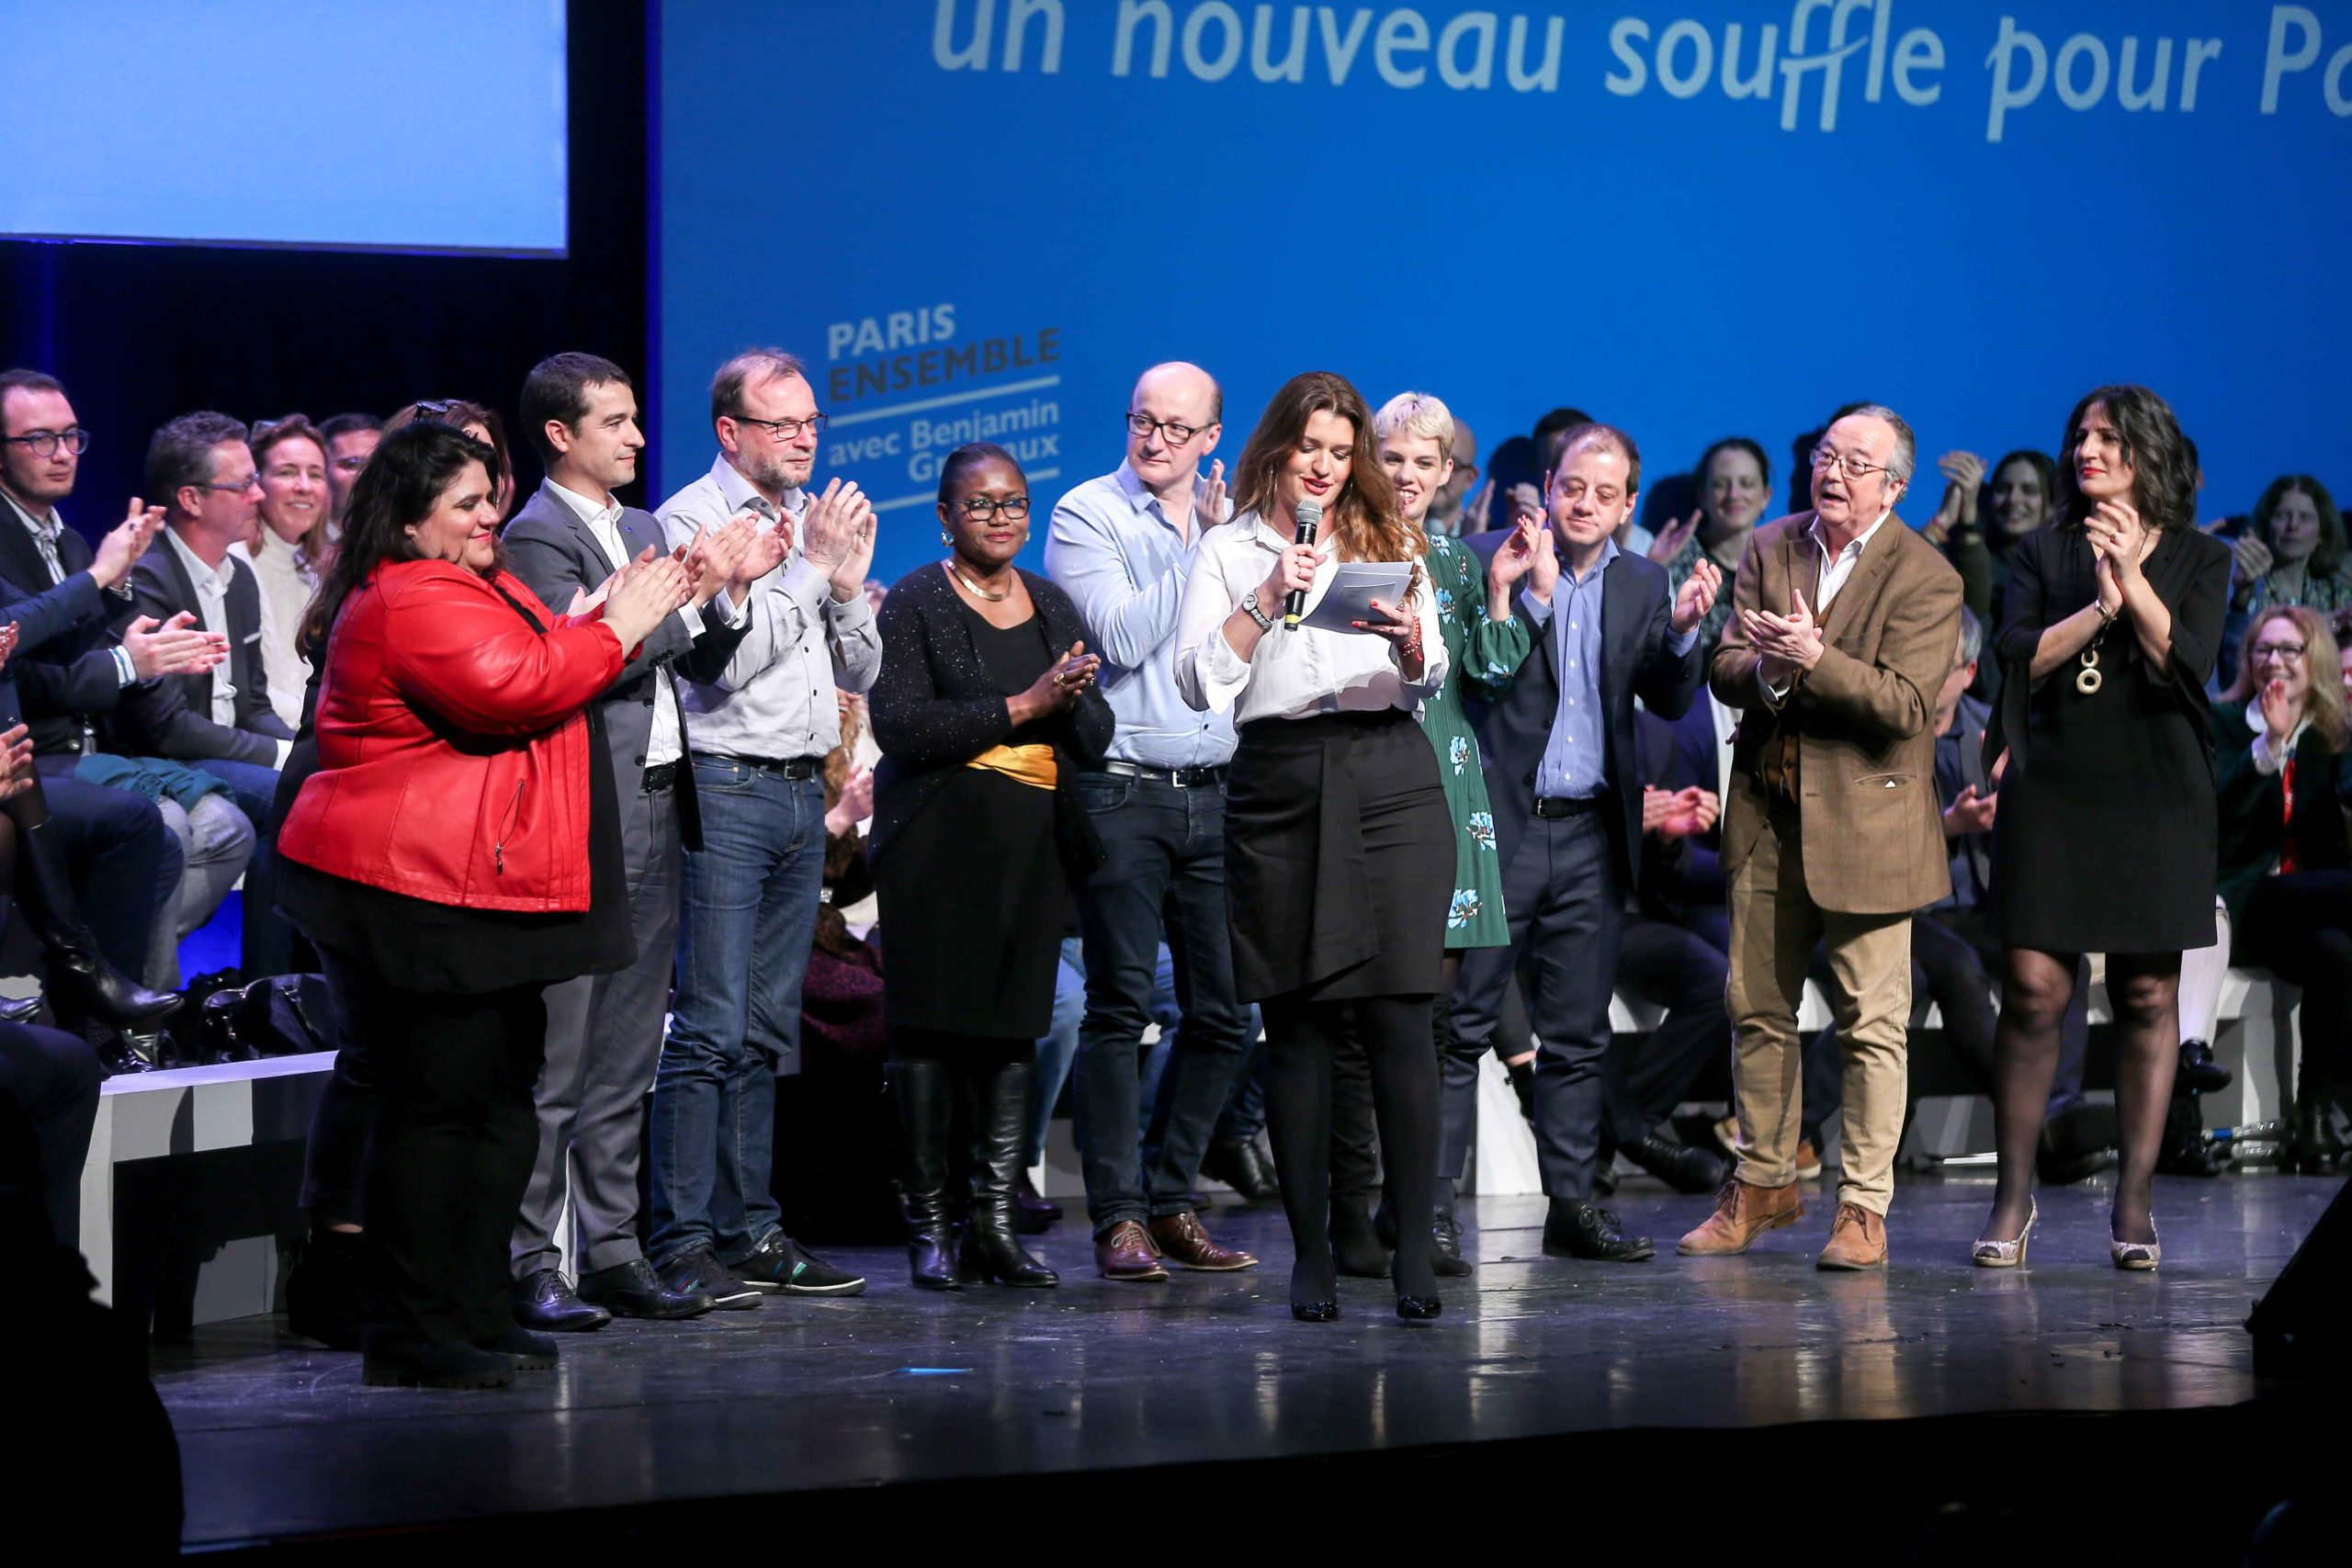 French Junior Minister for Gender Equality Marlene Schiappa (C), candidate in municipal elections in the 14th arrondissement of Paris, addresses at the Bobino theater for the Benjamin Griveaux meeting, in Paris, on January 27, 2020. Benjamin Griveaux is th